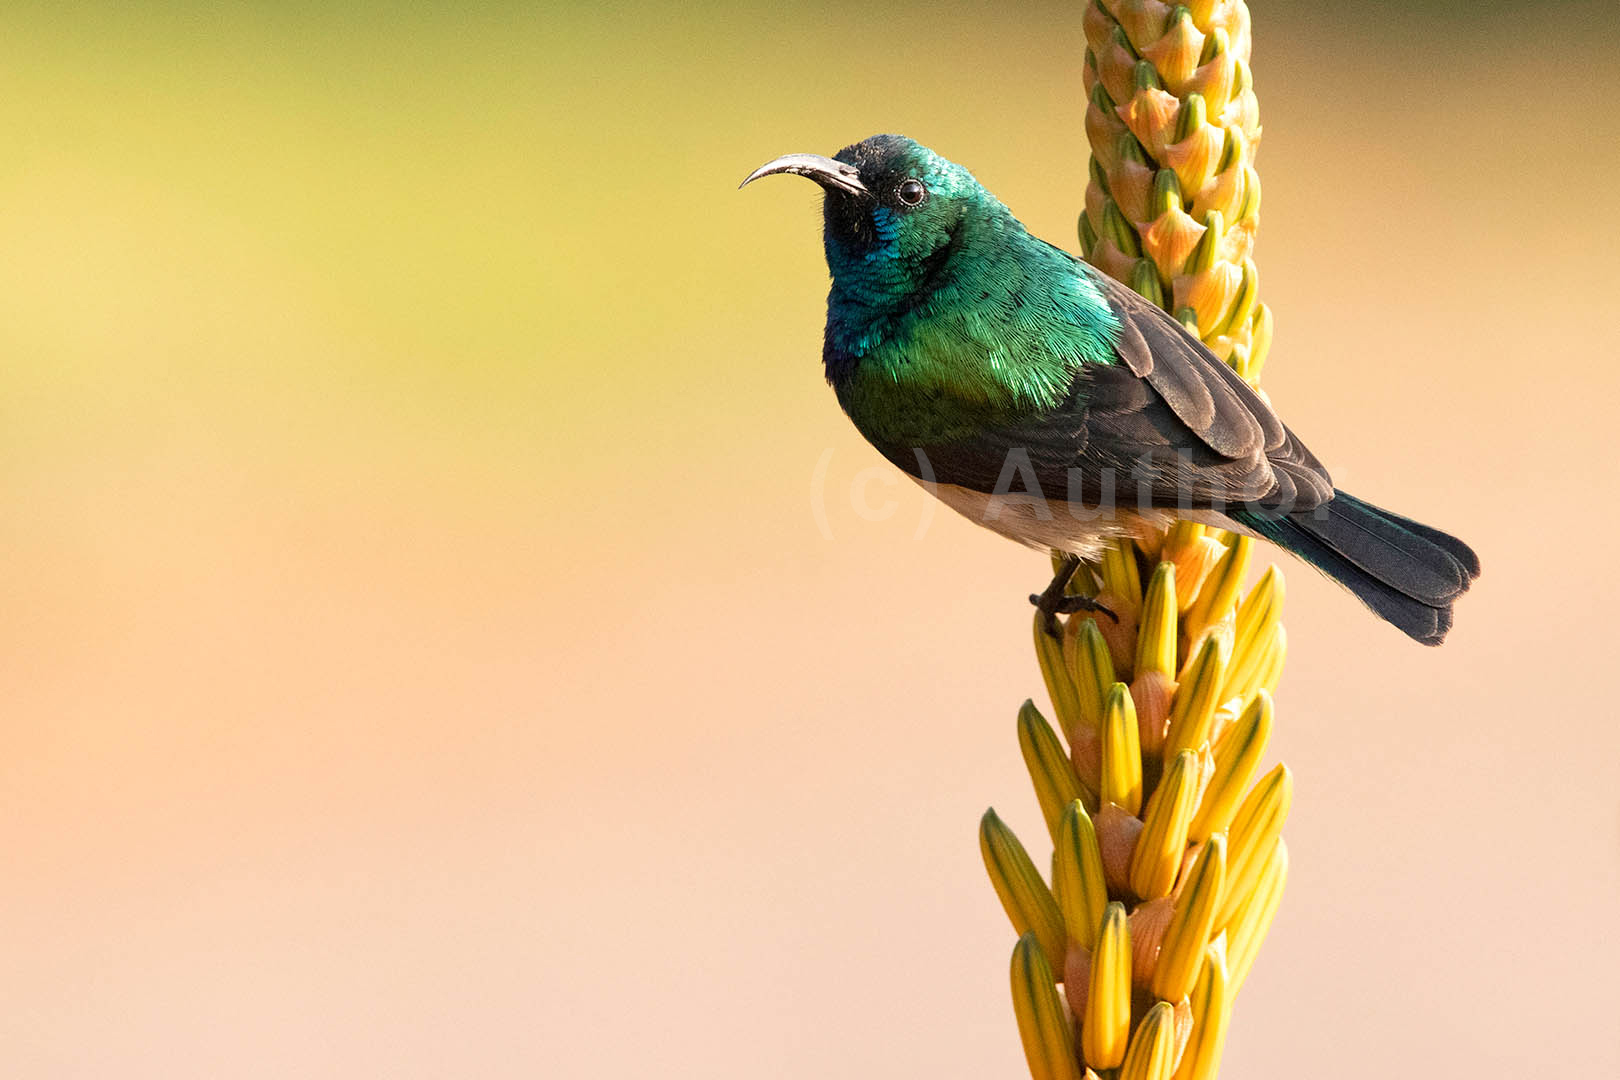 3_NA_White Bellied Sunbird_Andrew Mayes